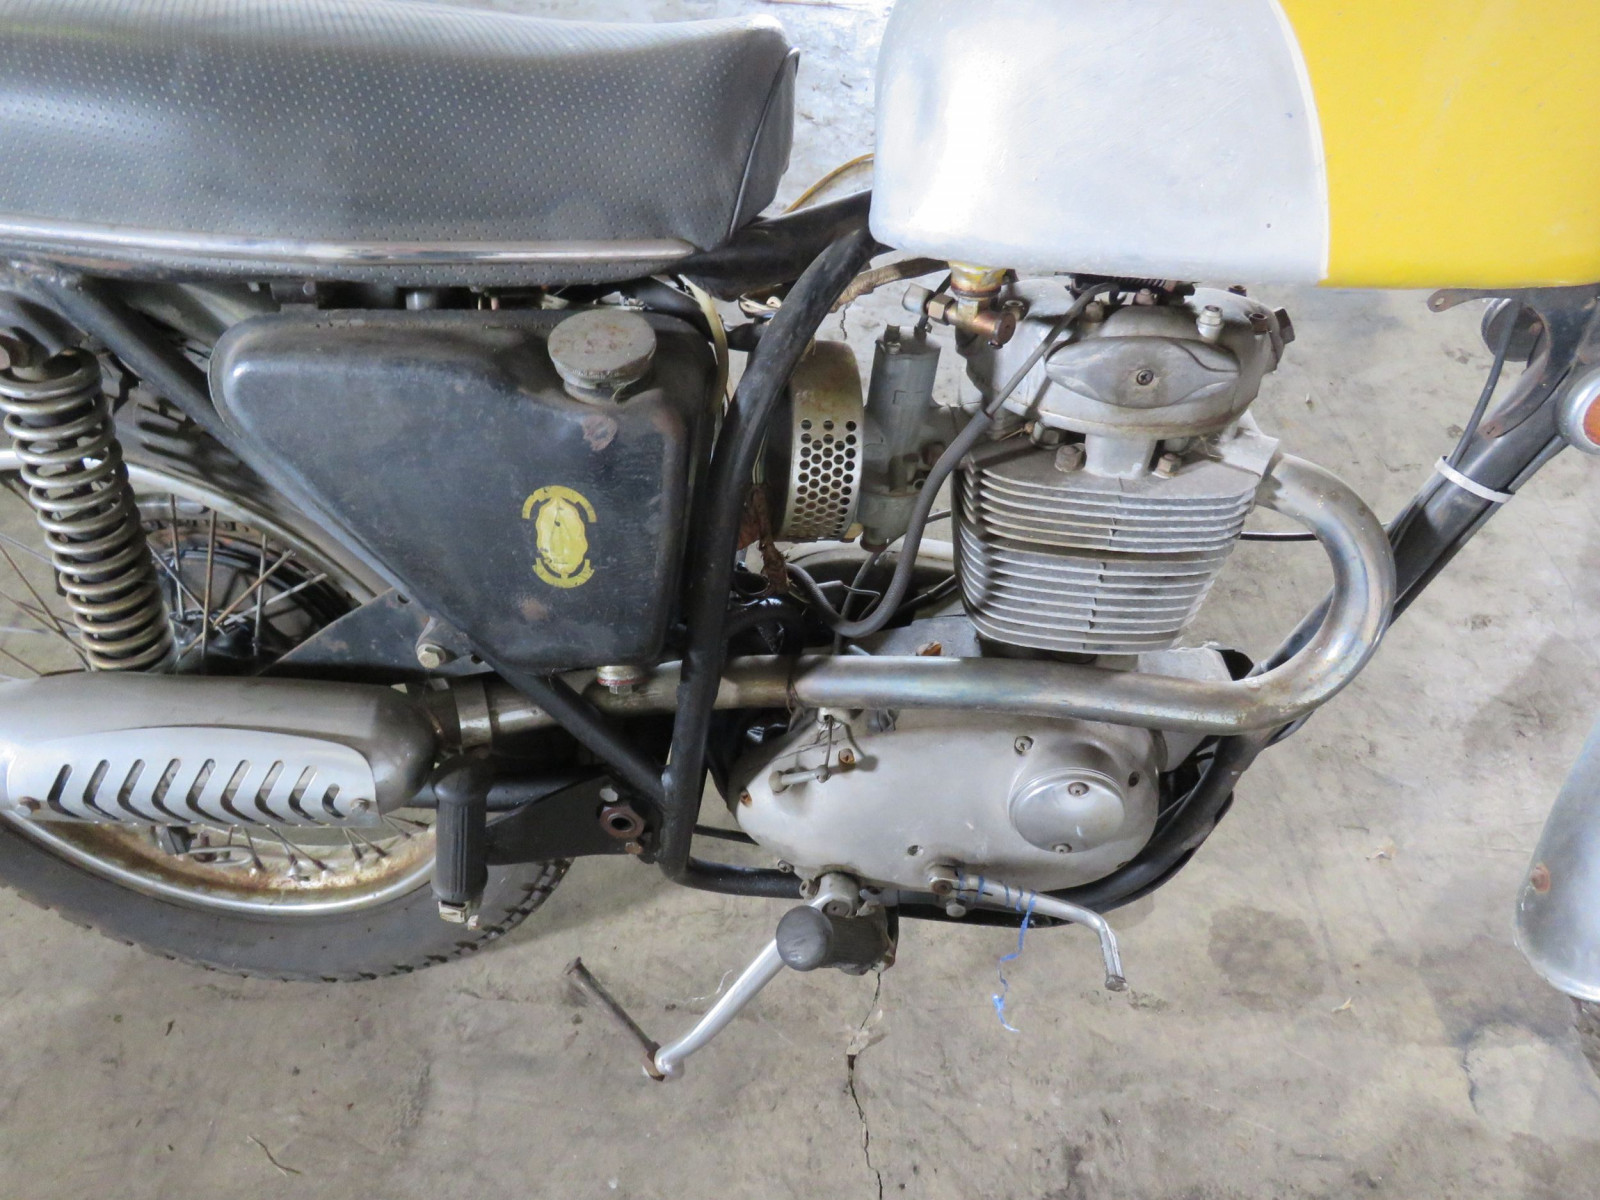 1968 BSA B44 Victor Special Motorcycle - Image 6